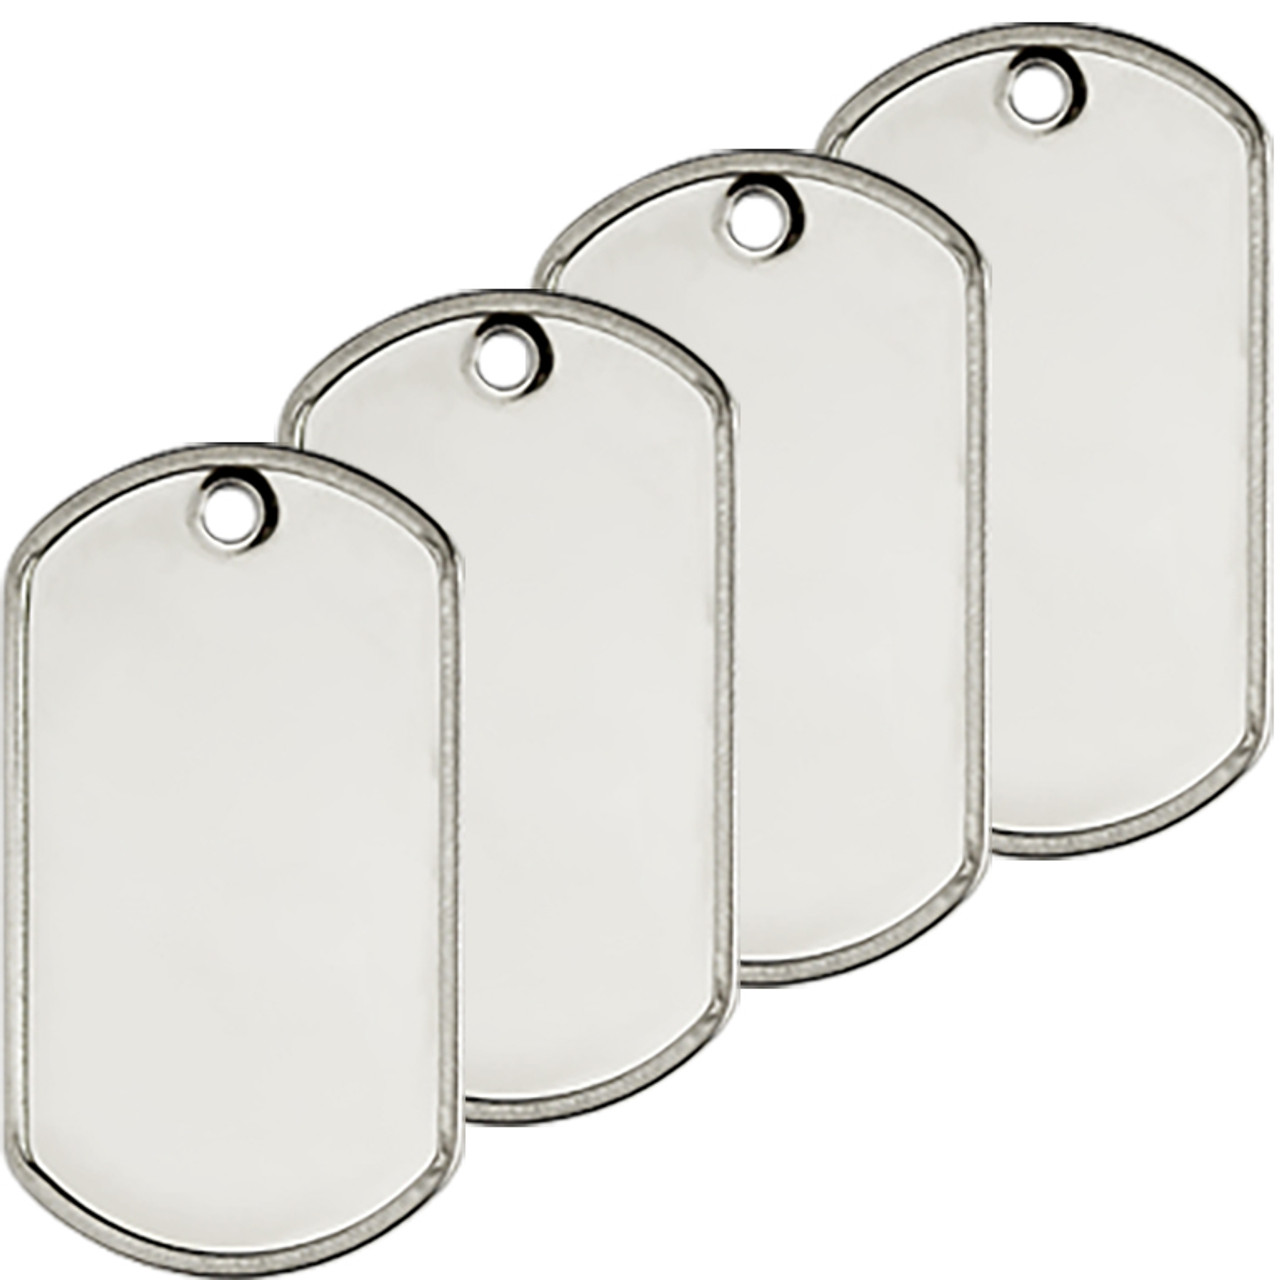 Standard blank rolled edge stainless steel military dog tags with a shiny finish.